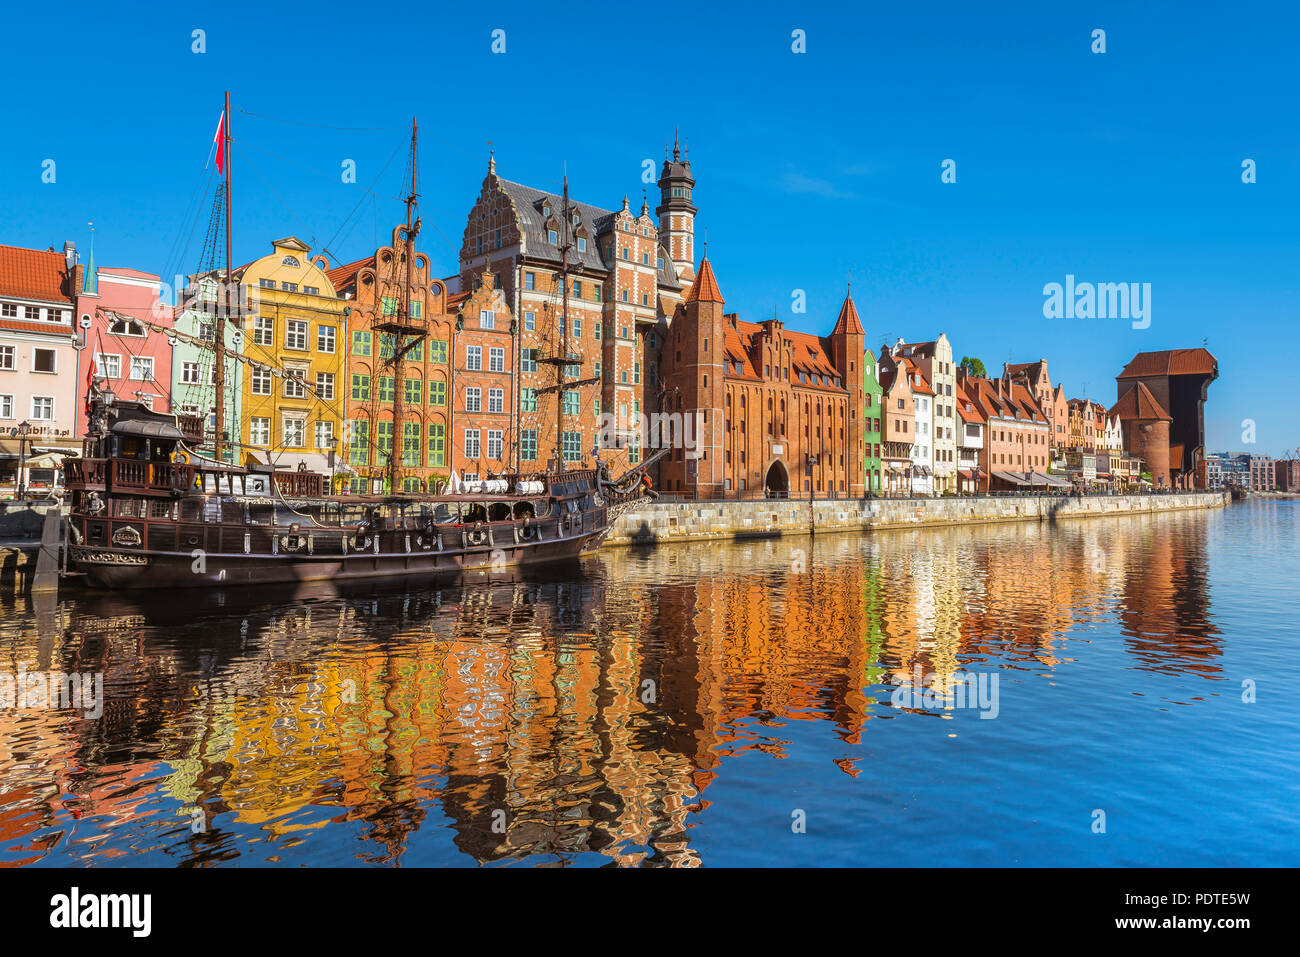 Gdansk Poland River Motlawa, view at sunrise of the Old Town waterfront area in the center of Gdansk, Pomerania, Poland. Stock Photo